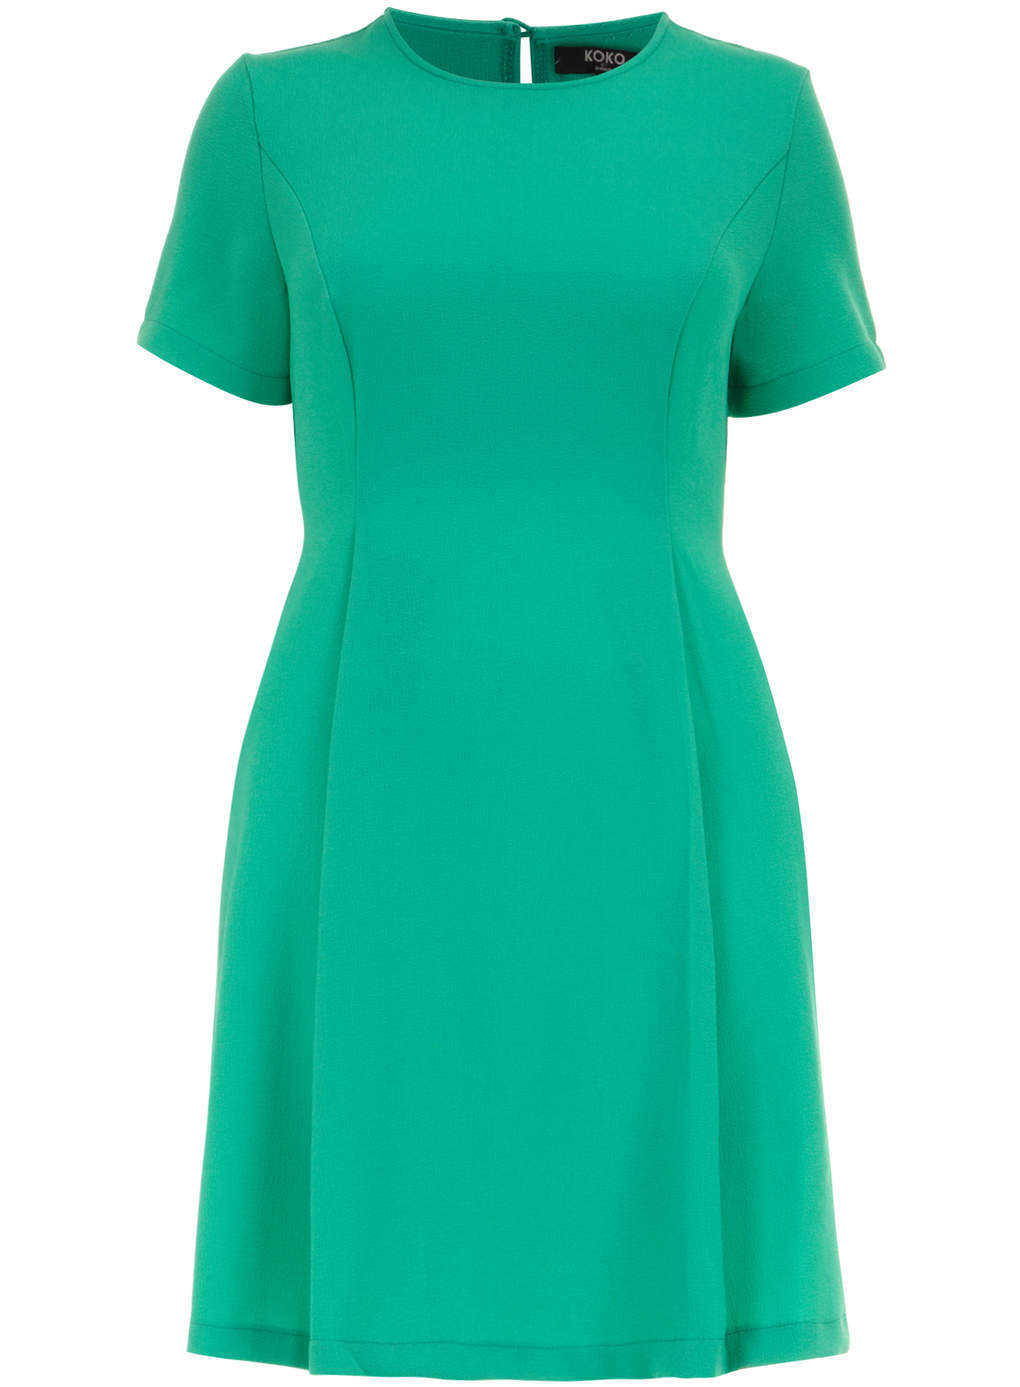 Koko Koko Green Skater Dress - style: shift; length: mid thigh; pattern: plain; predominant colour: emerald green; occasions: casual, evening, occasion, creative work; fit: fitted at waist & bust; fibres: polyester/polyamide - 100%; neckline: crew; hip detail: structured pleats at hip; sleeve length: short sleeve; sleeve style: standard; pattern type: fabric; texture group: other - light to midweight; trends: hot brights; season: s/s 2014